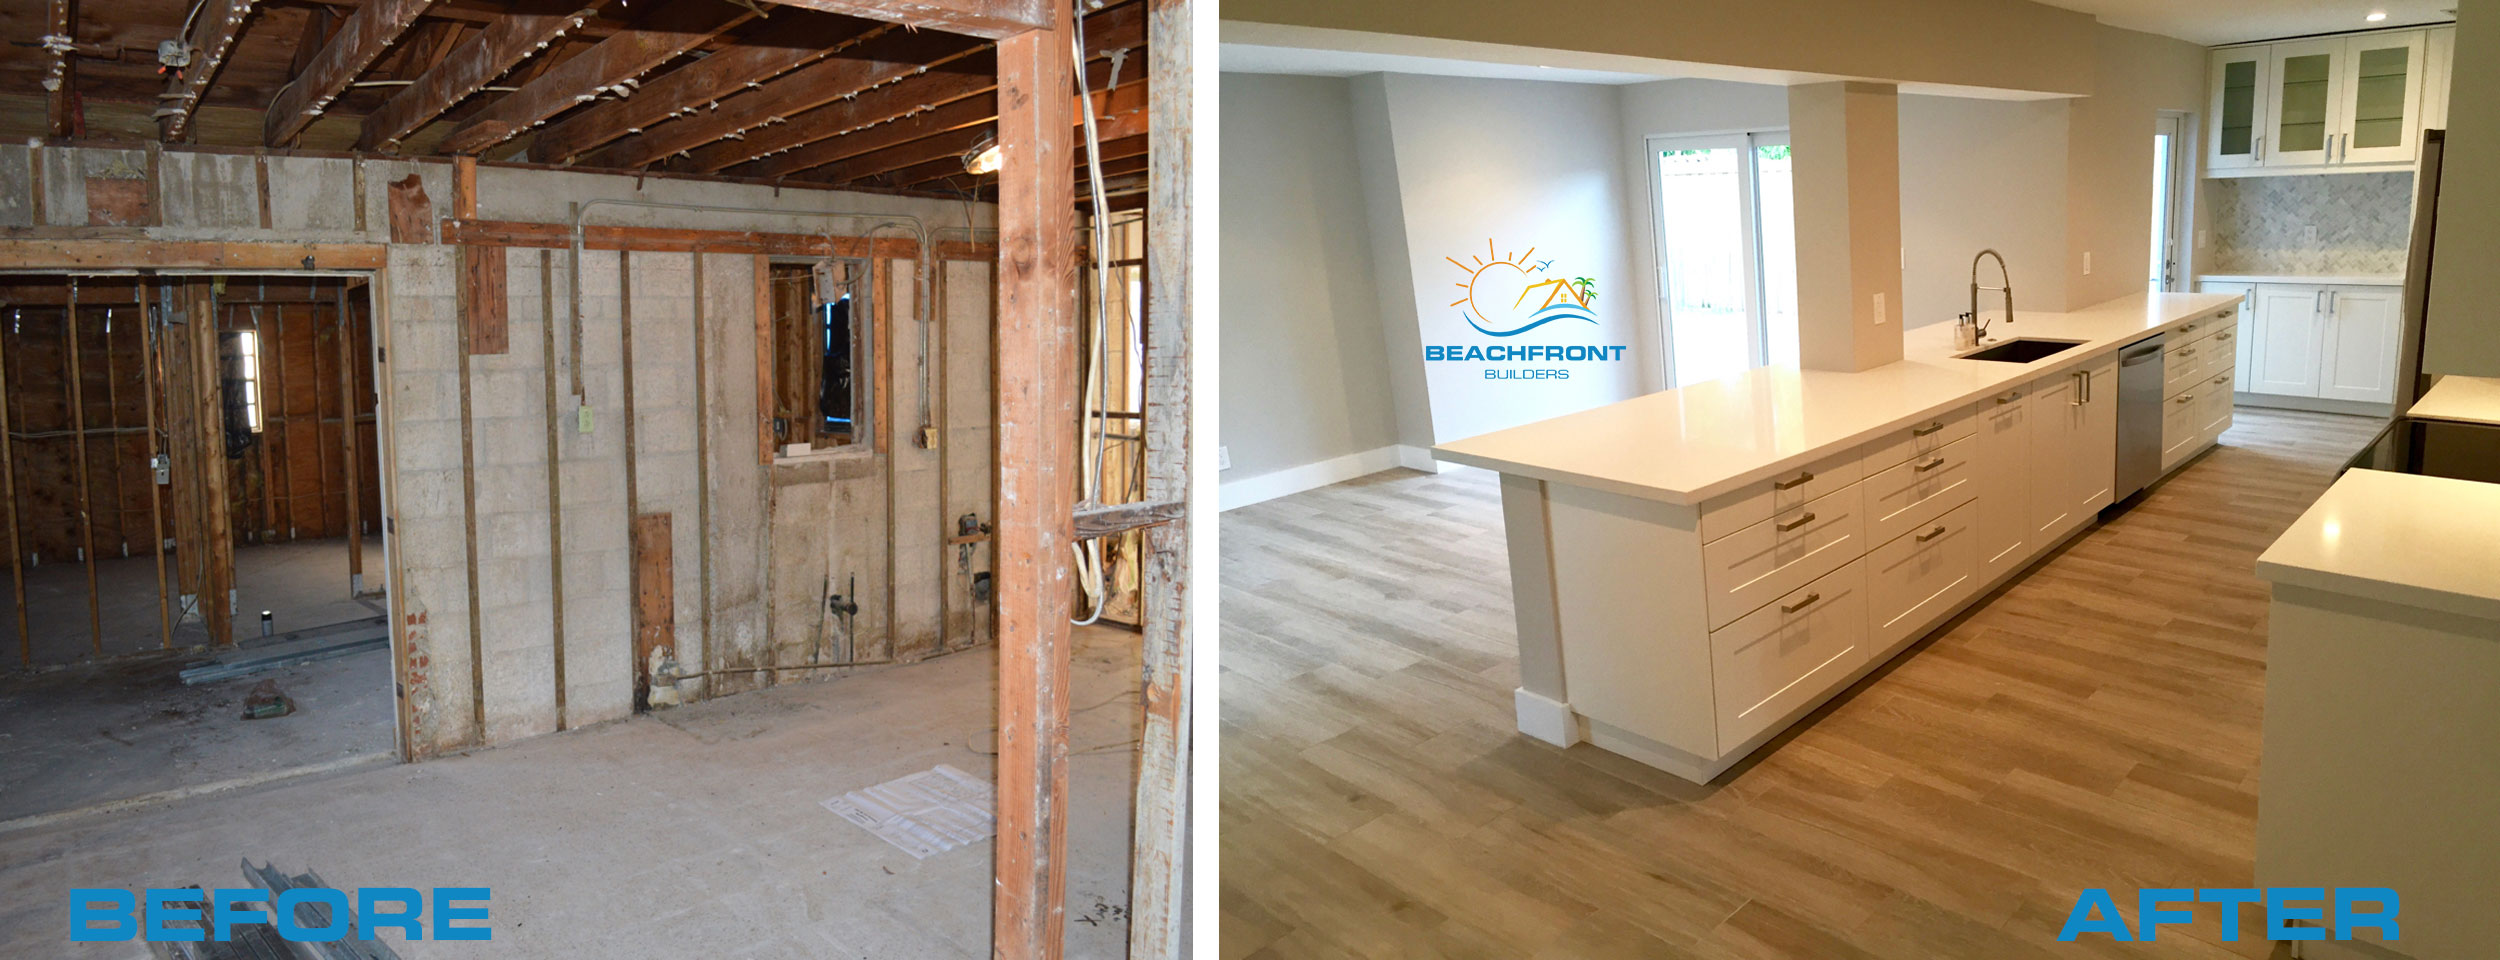 Kitchen Remodel Before And After Wall Removal beach house flip delray beach florida - beachfront builders